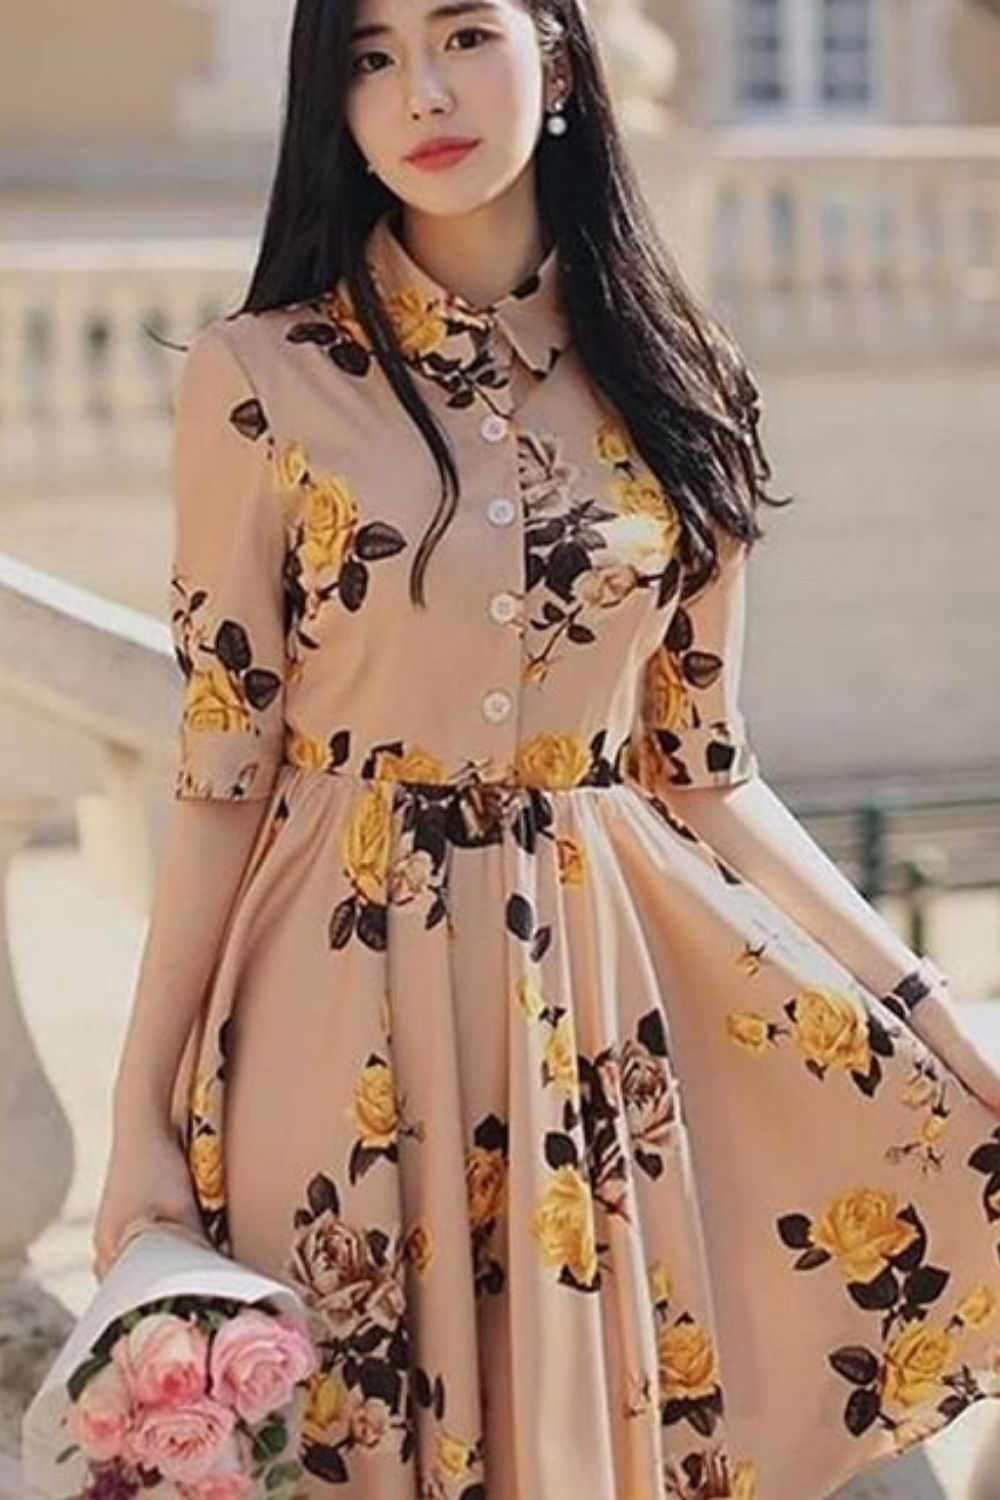 42 Elegant Summer Dresses To Rock This Year Fashion New Trends Elegant Summer Dresses Fashion Stylish Clothes For Women [ 1500 x 1000 Pixel ]